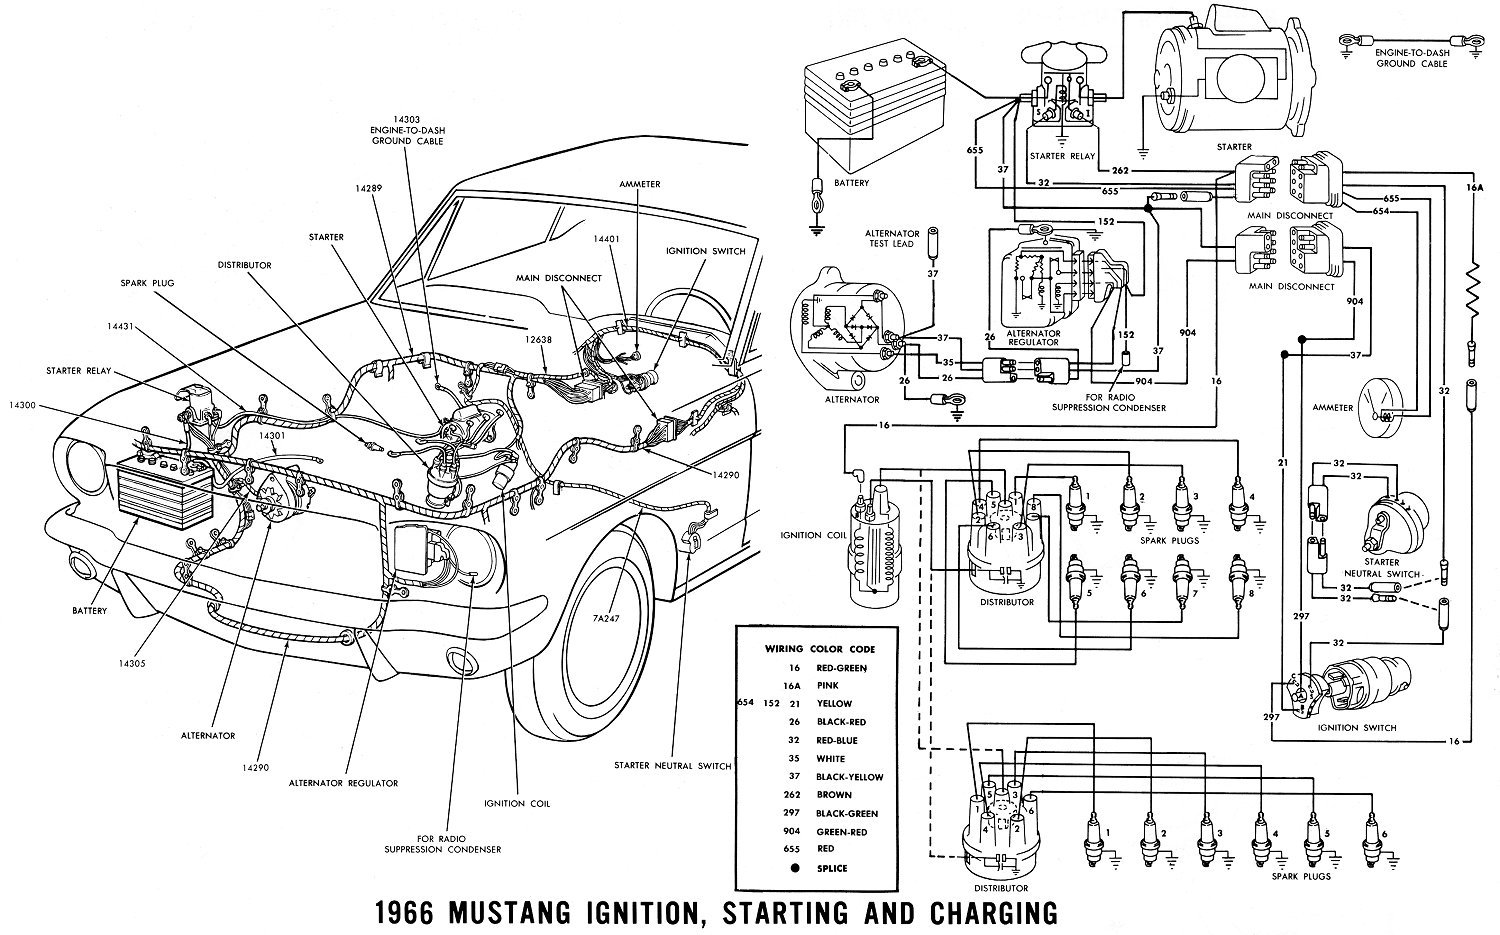 2008 mustang engine wiring diagram 1965 ford mustang engine wiring diagram #5